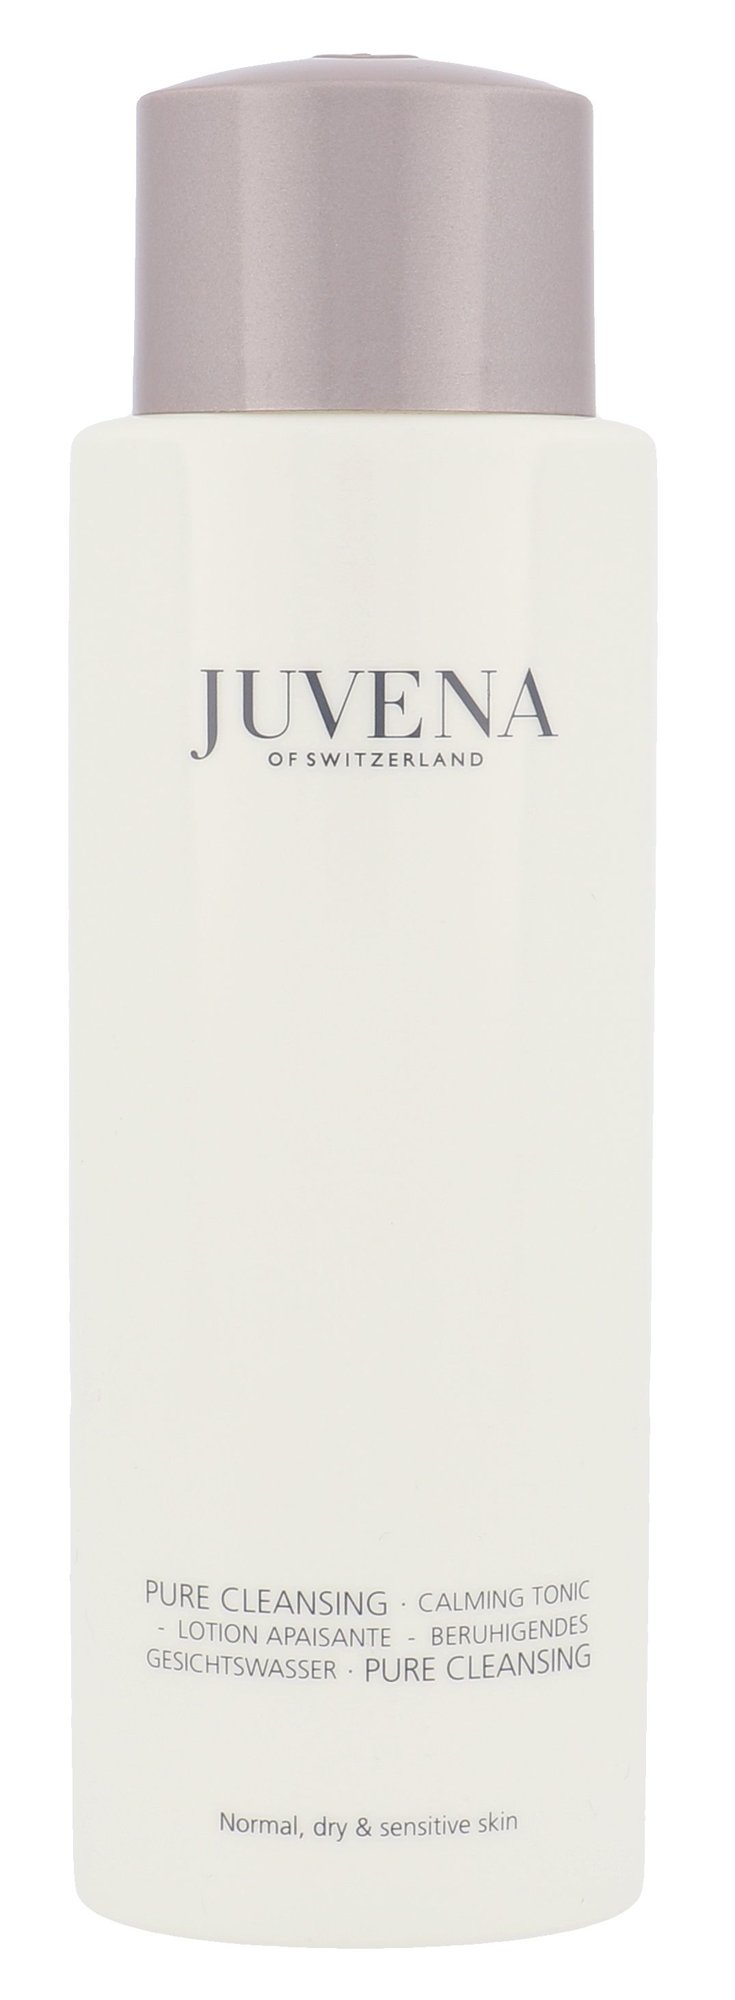 Juvena Pure Cleansing Cosmetic 200ml